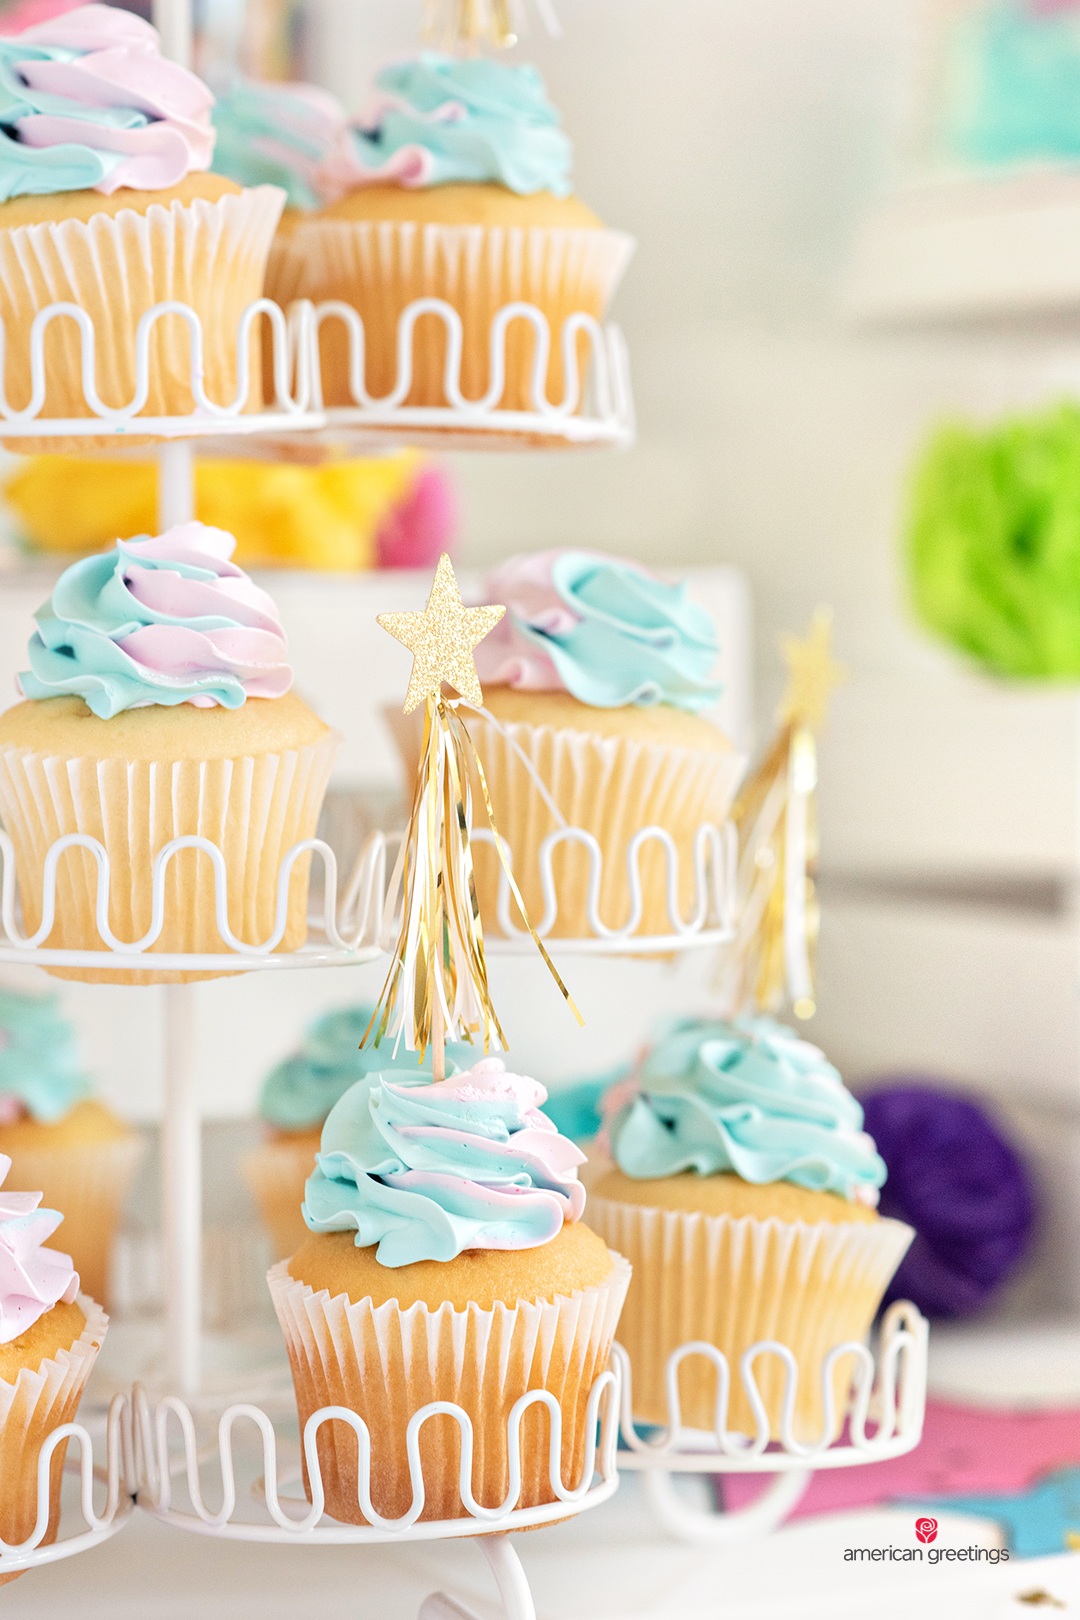 Cupcakes with colorful decoration on top of them.